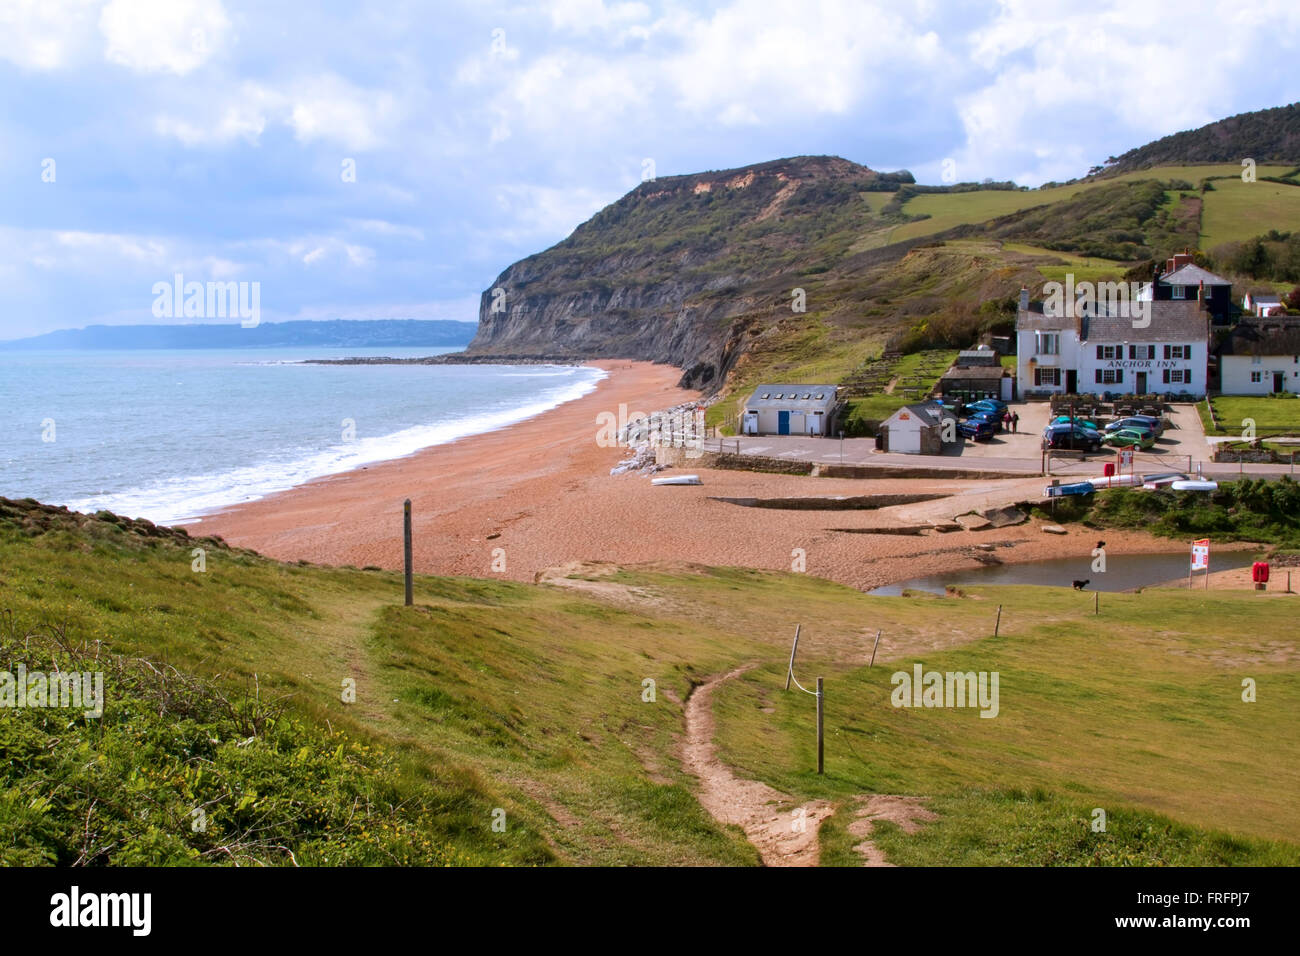 looking down on to the Anchor Inn at Seatown on the Jurassic Coast, with a view of Golden Cap in the background, Stock Photo